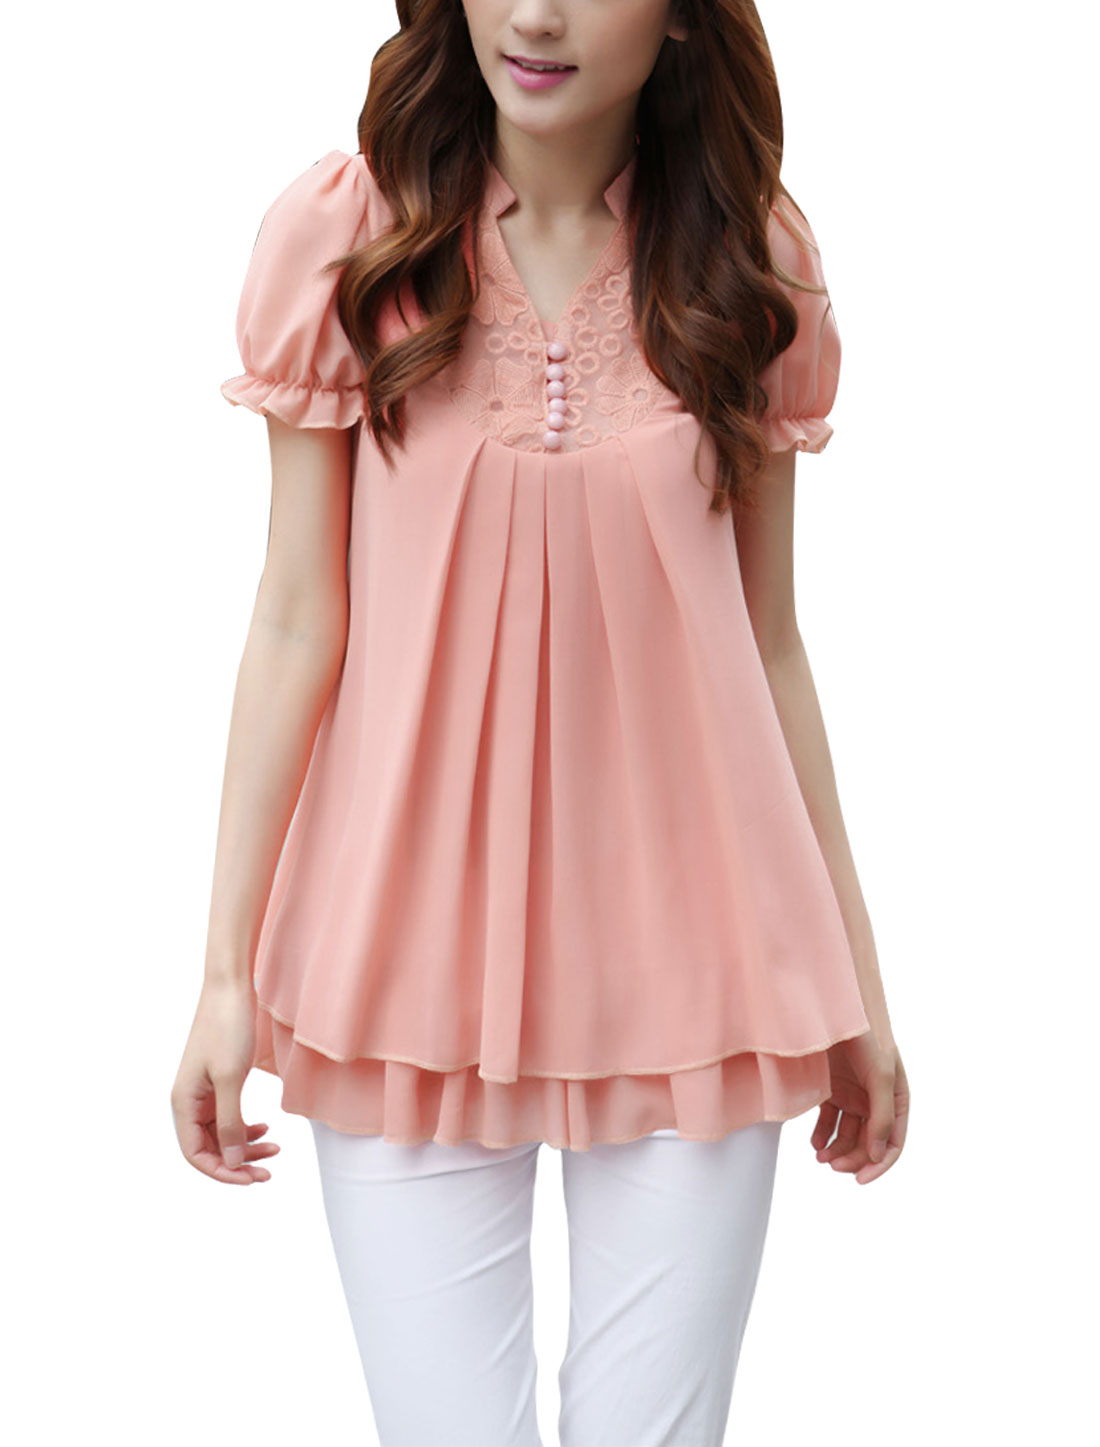 Women Flouncing Lace Solid Color V Neck Flare Shirts Pink M